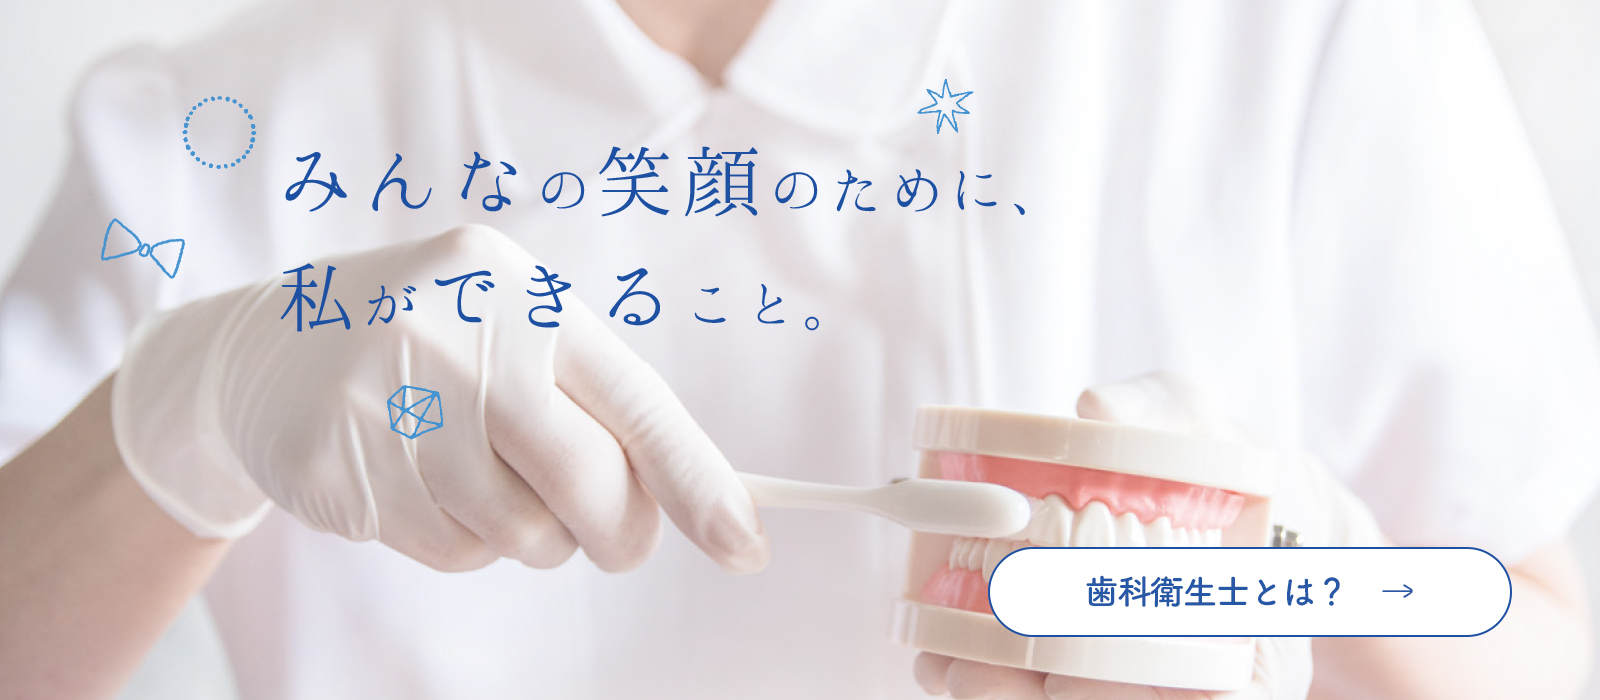 http://dental.ao-g.jp/wp-content/uploads/2018/03/mainvisual_bn_02.jpg